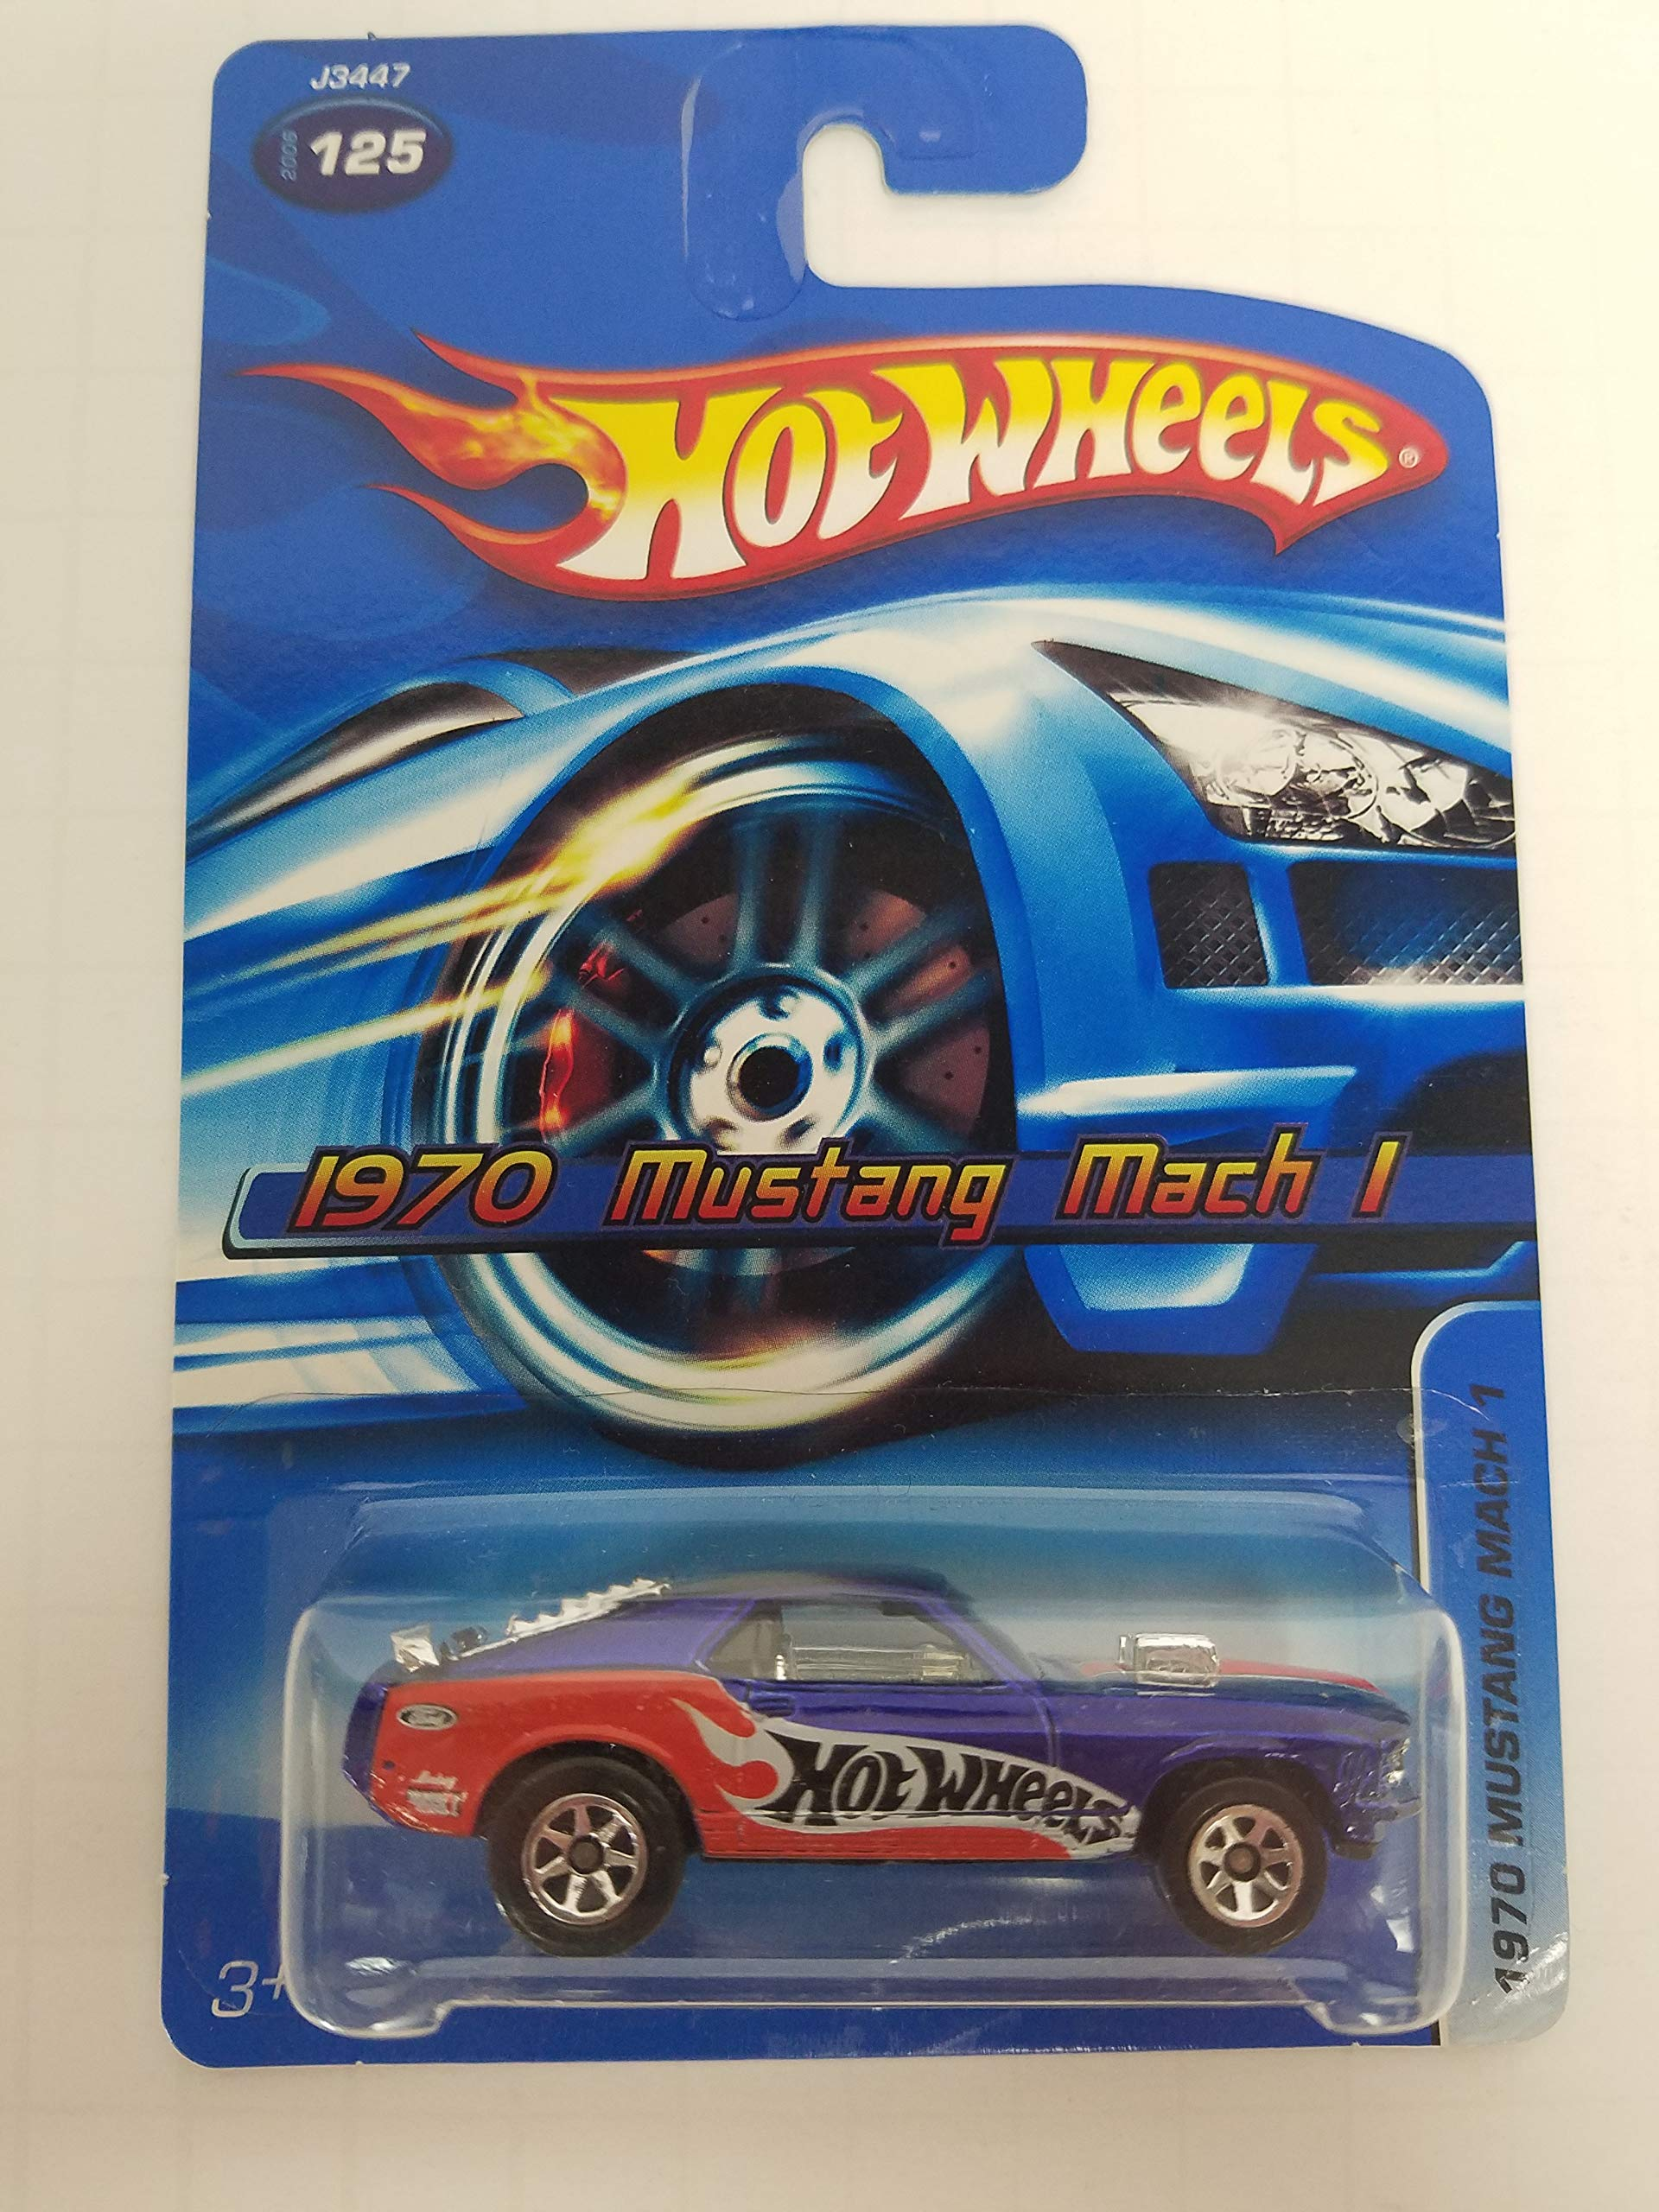 1970 Mustang Mach 1 No.125 Hot Wheels 2006 1/64 scale diecast car